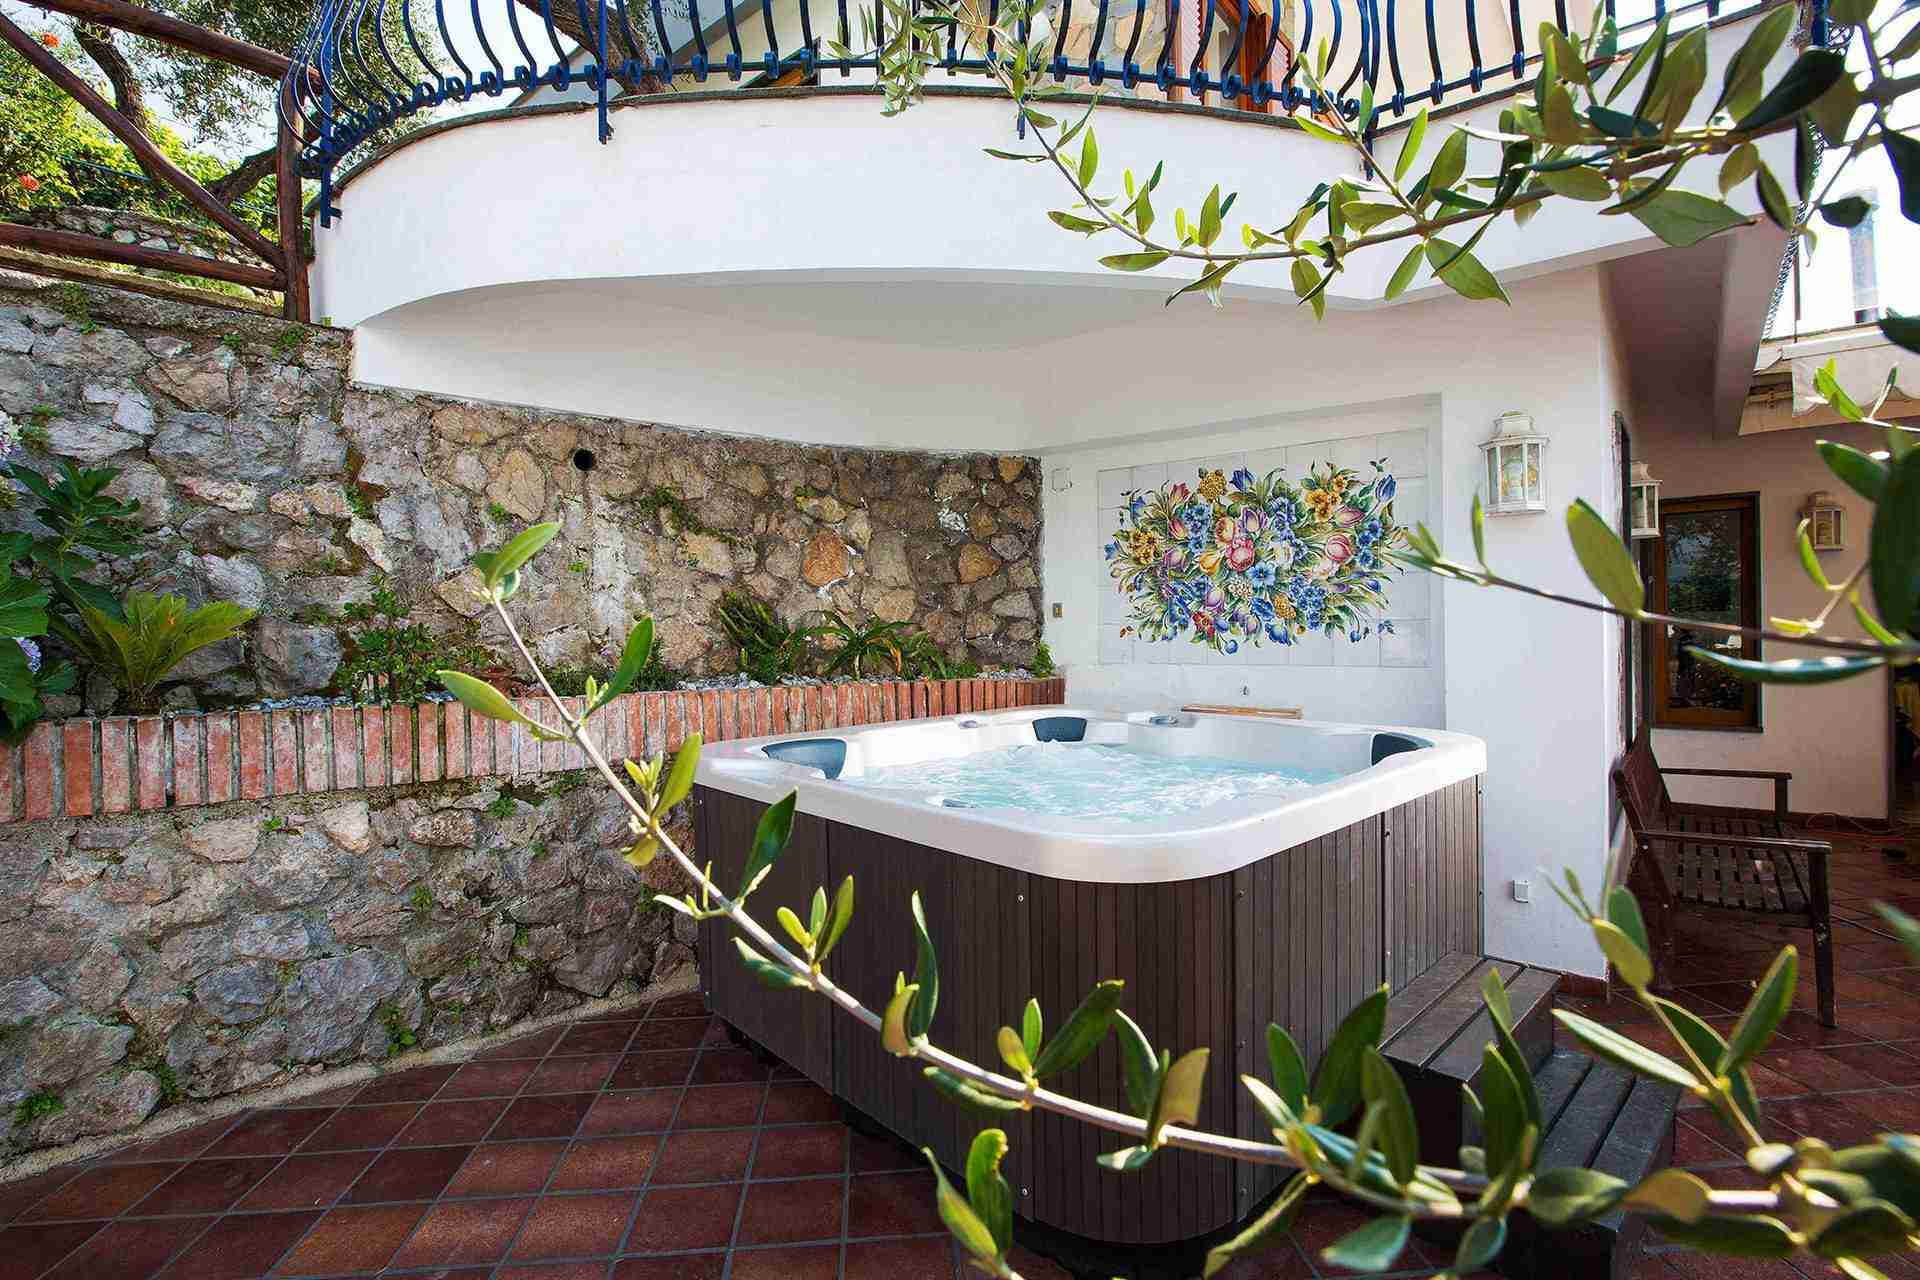 16 turchese outdoor jacuzzi